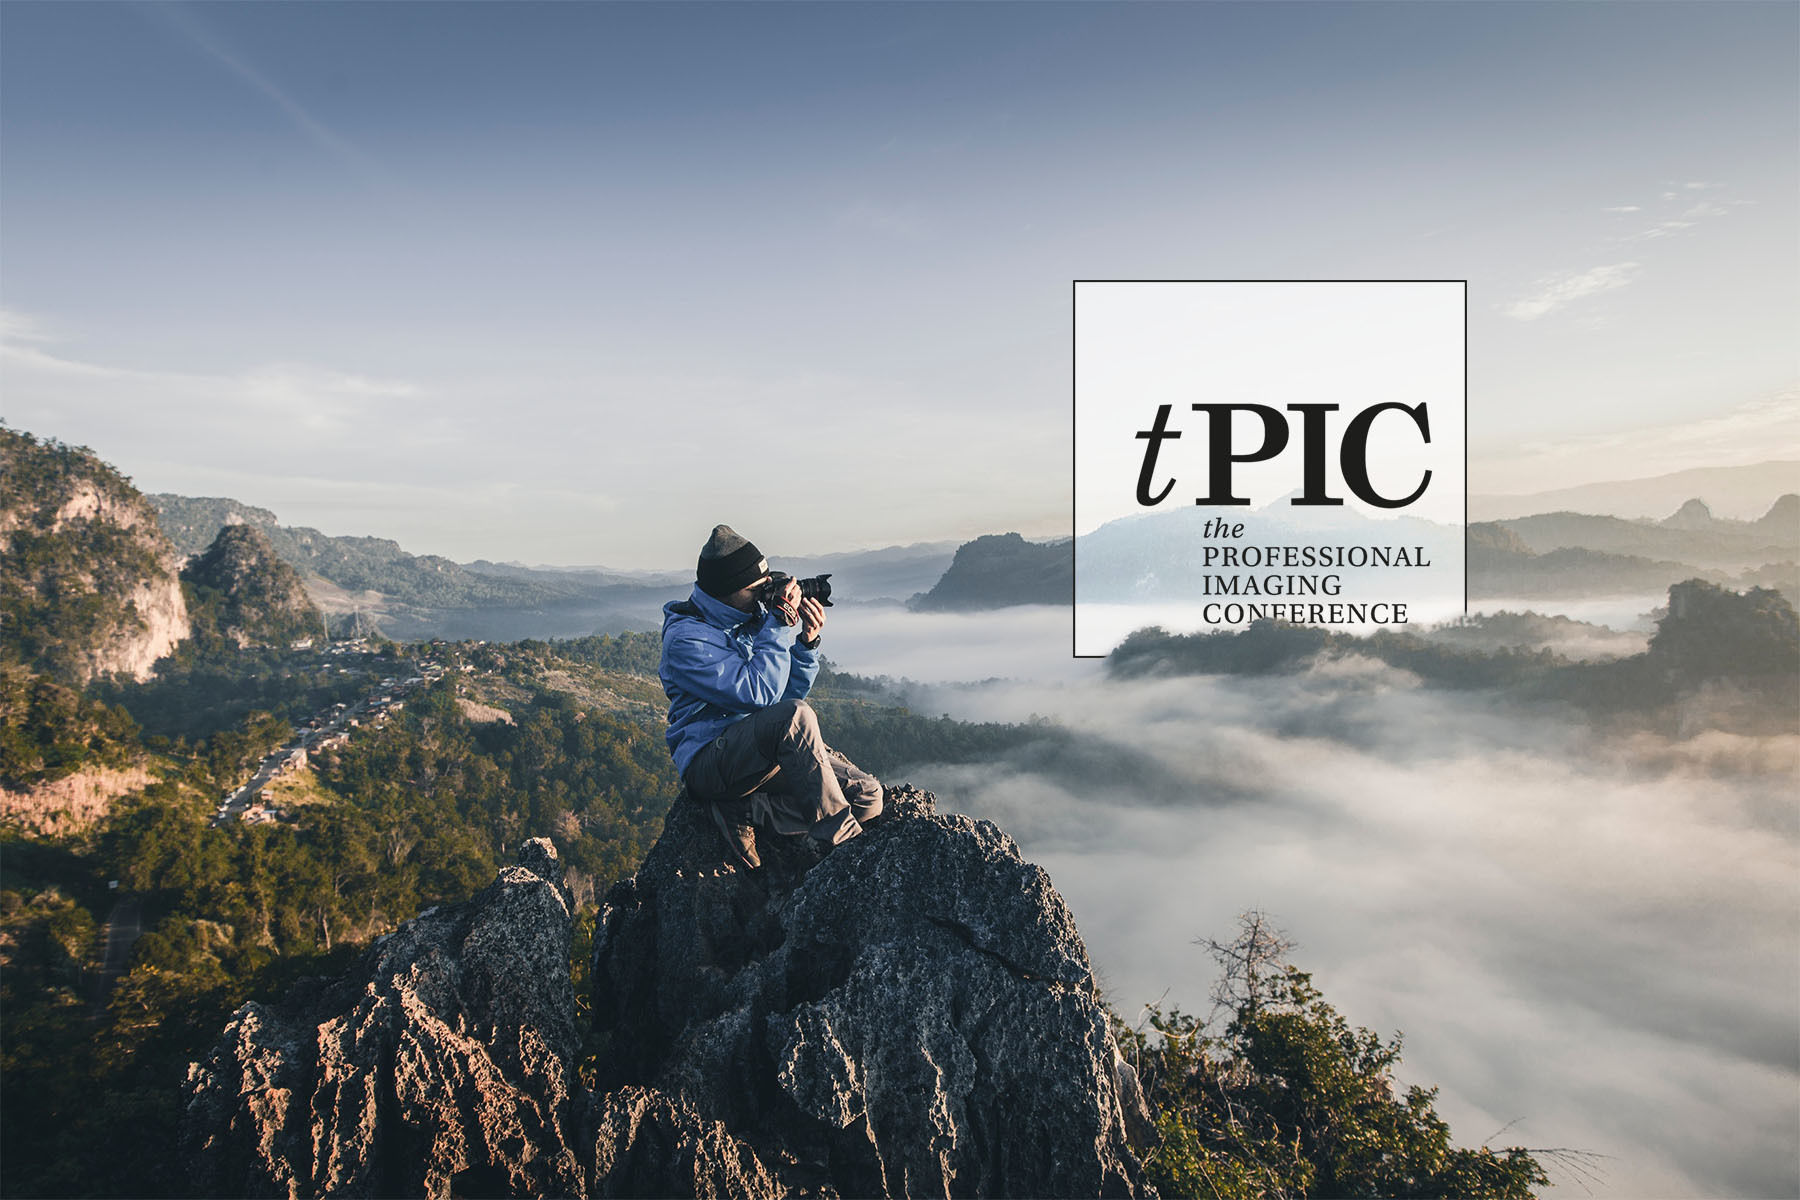 tPIC - the Professional Imaging Conference